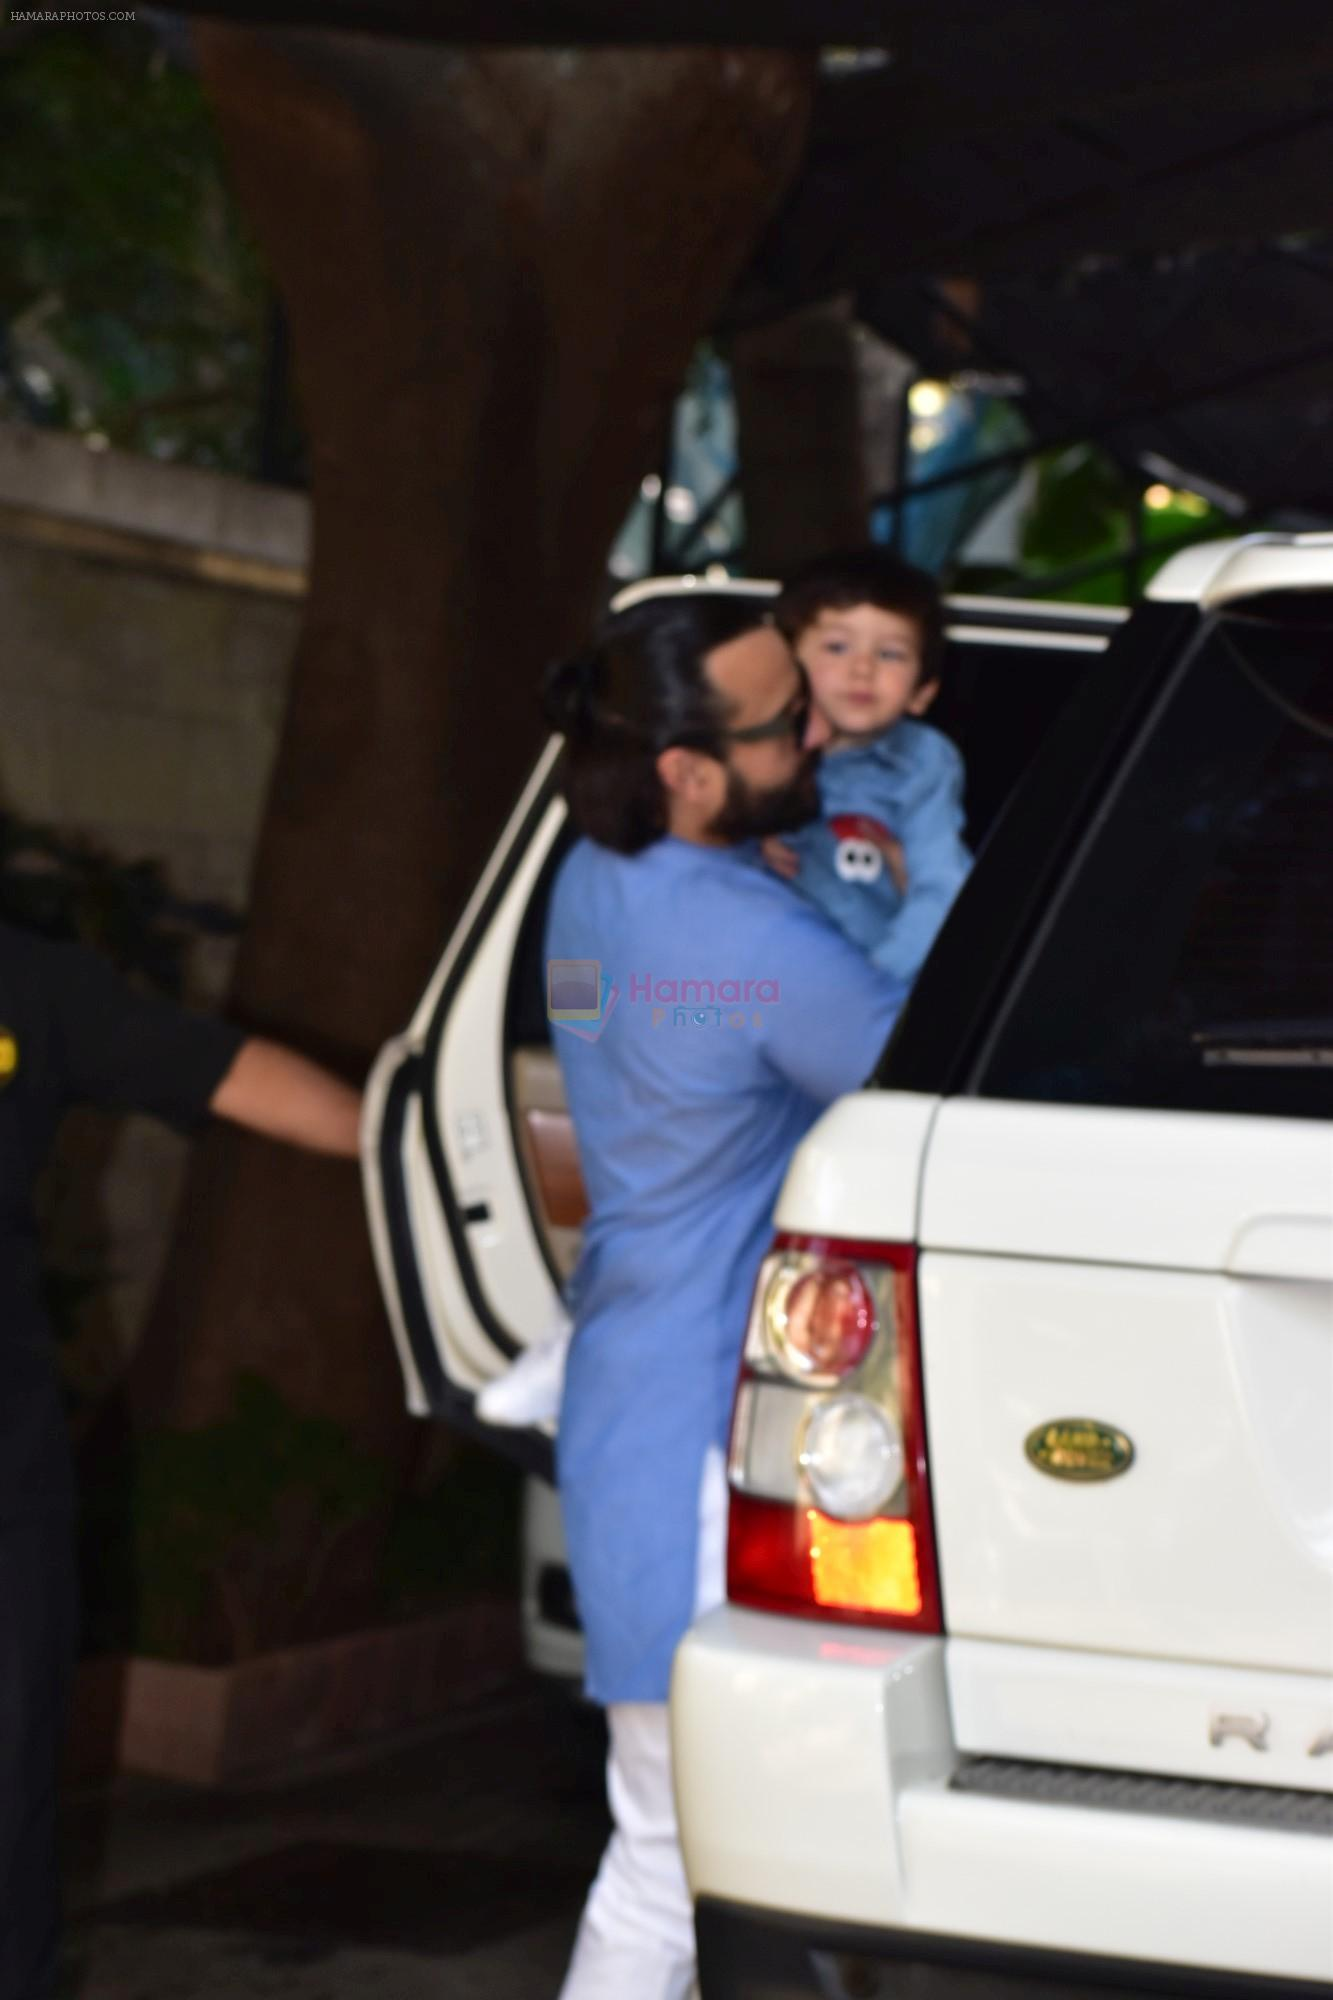 Saif Ali Khan attends the christmas brunch at Shashi Kapoor's house in juhu on 25th Dec 2018